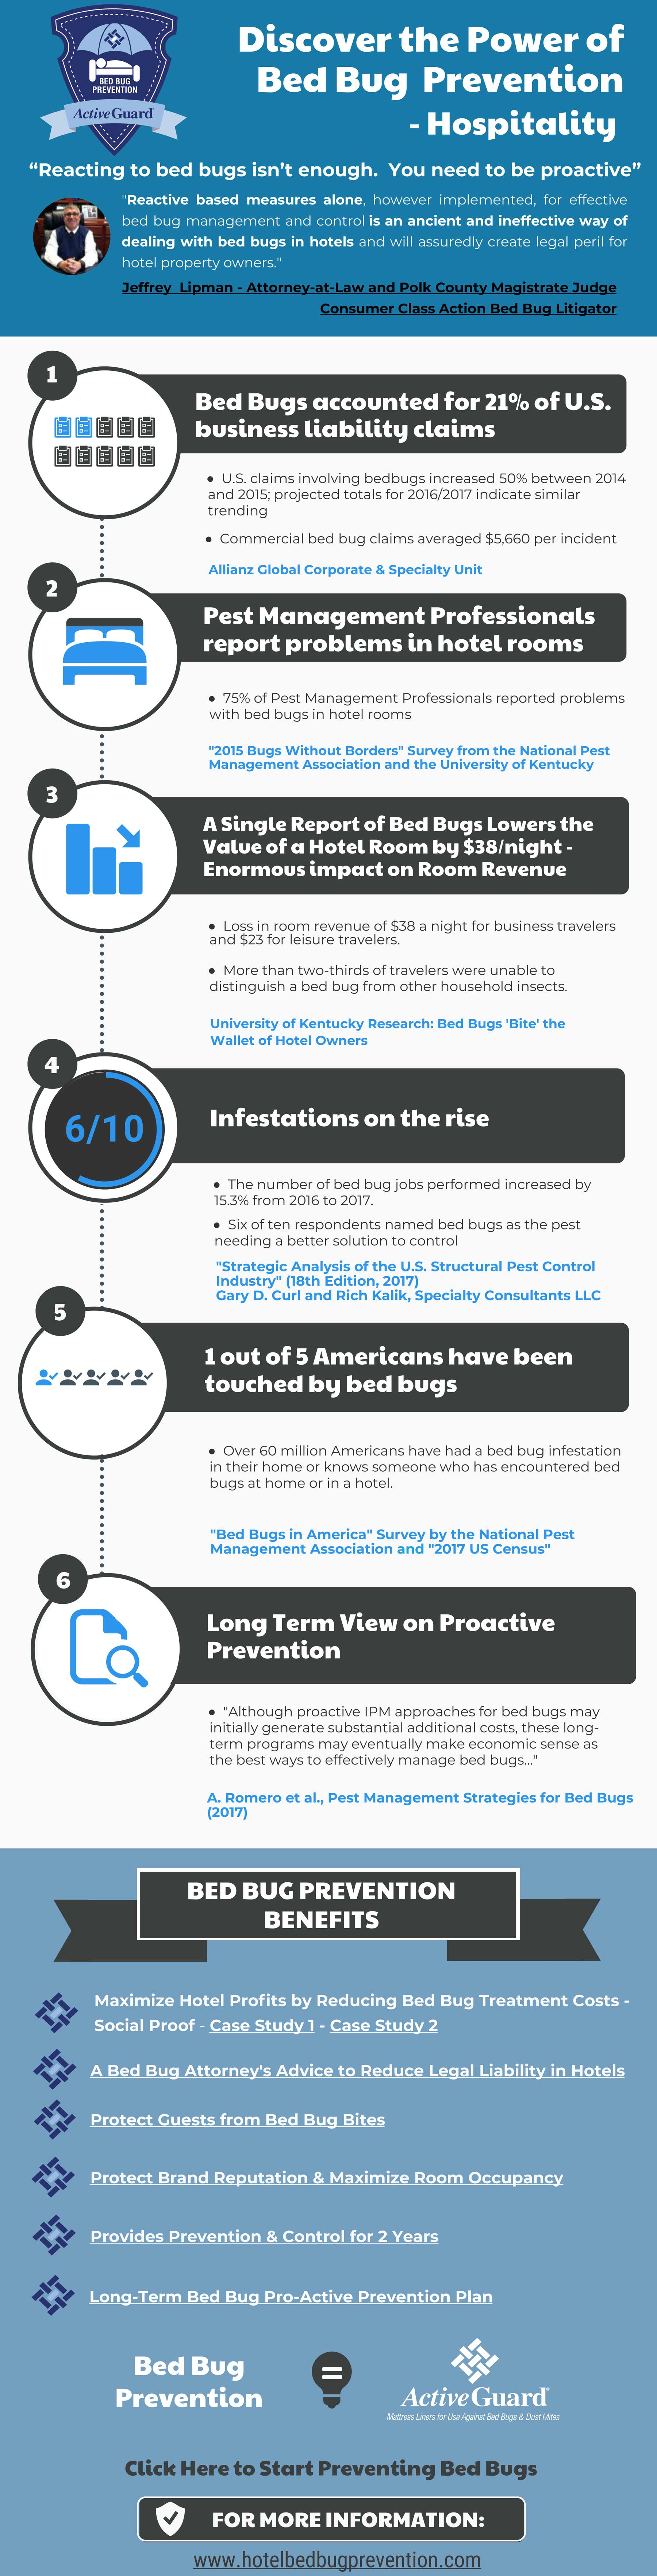 Allergy Technologies infographic